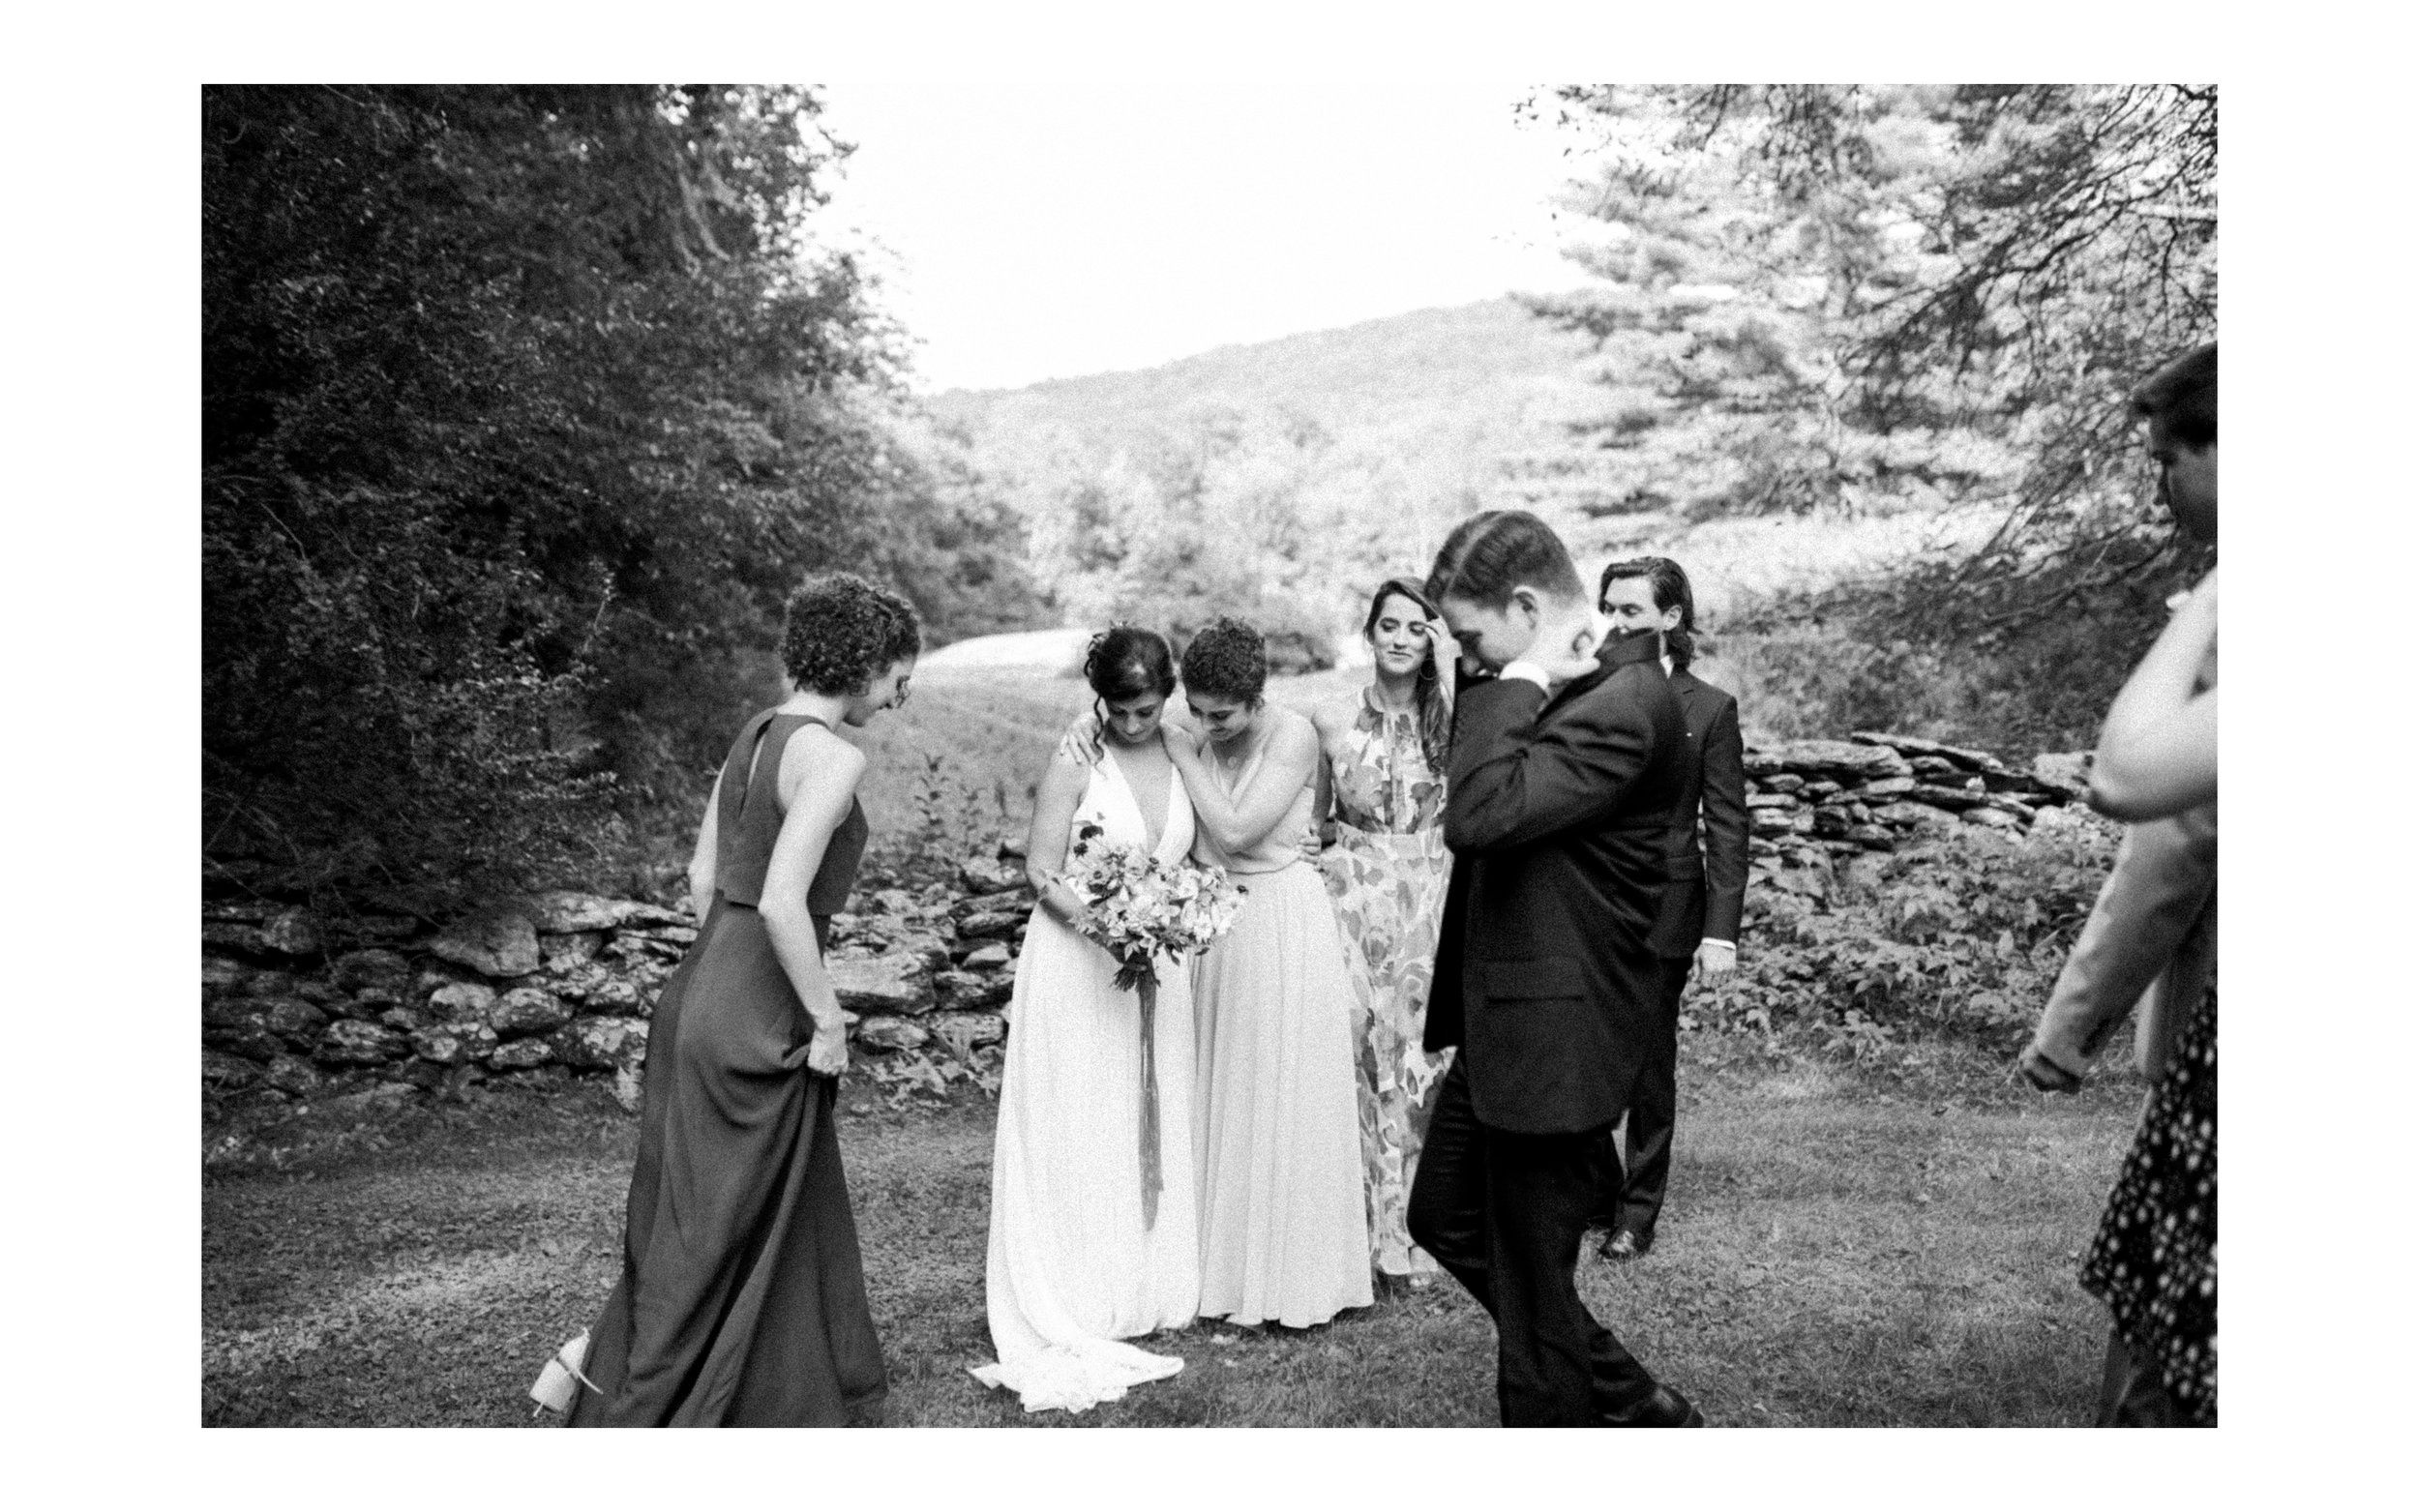 Berkshires Wedding Fine Art Wedding Photographer_Meg Haley Photographs_011.jpg